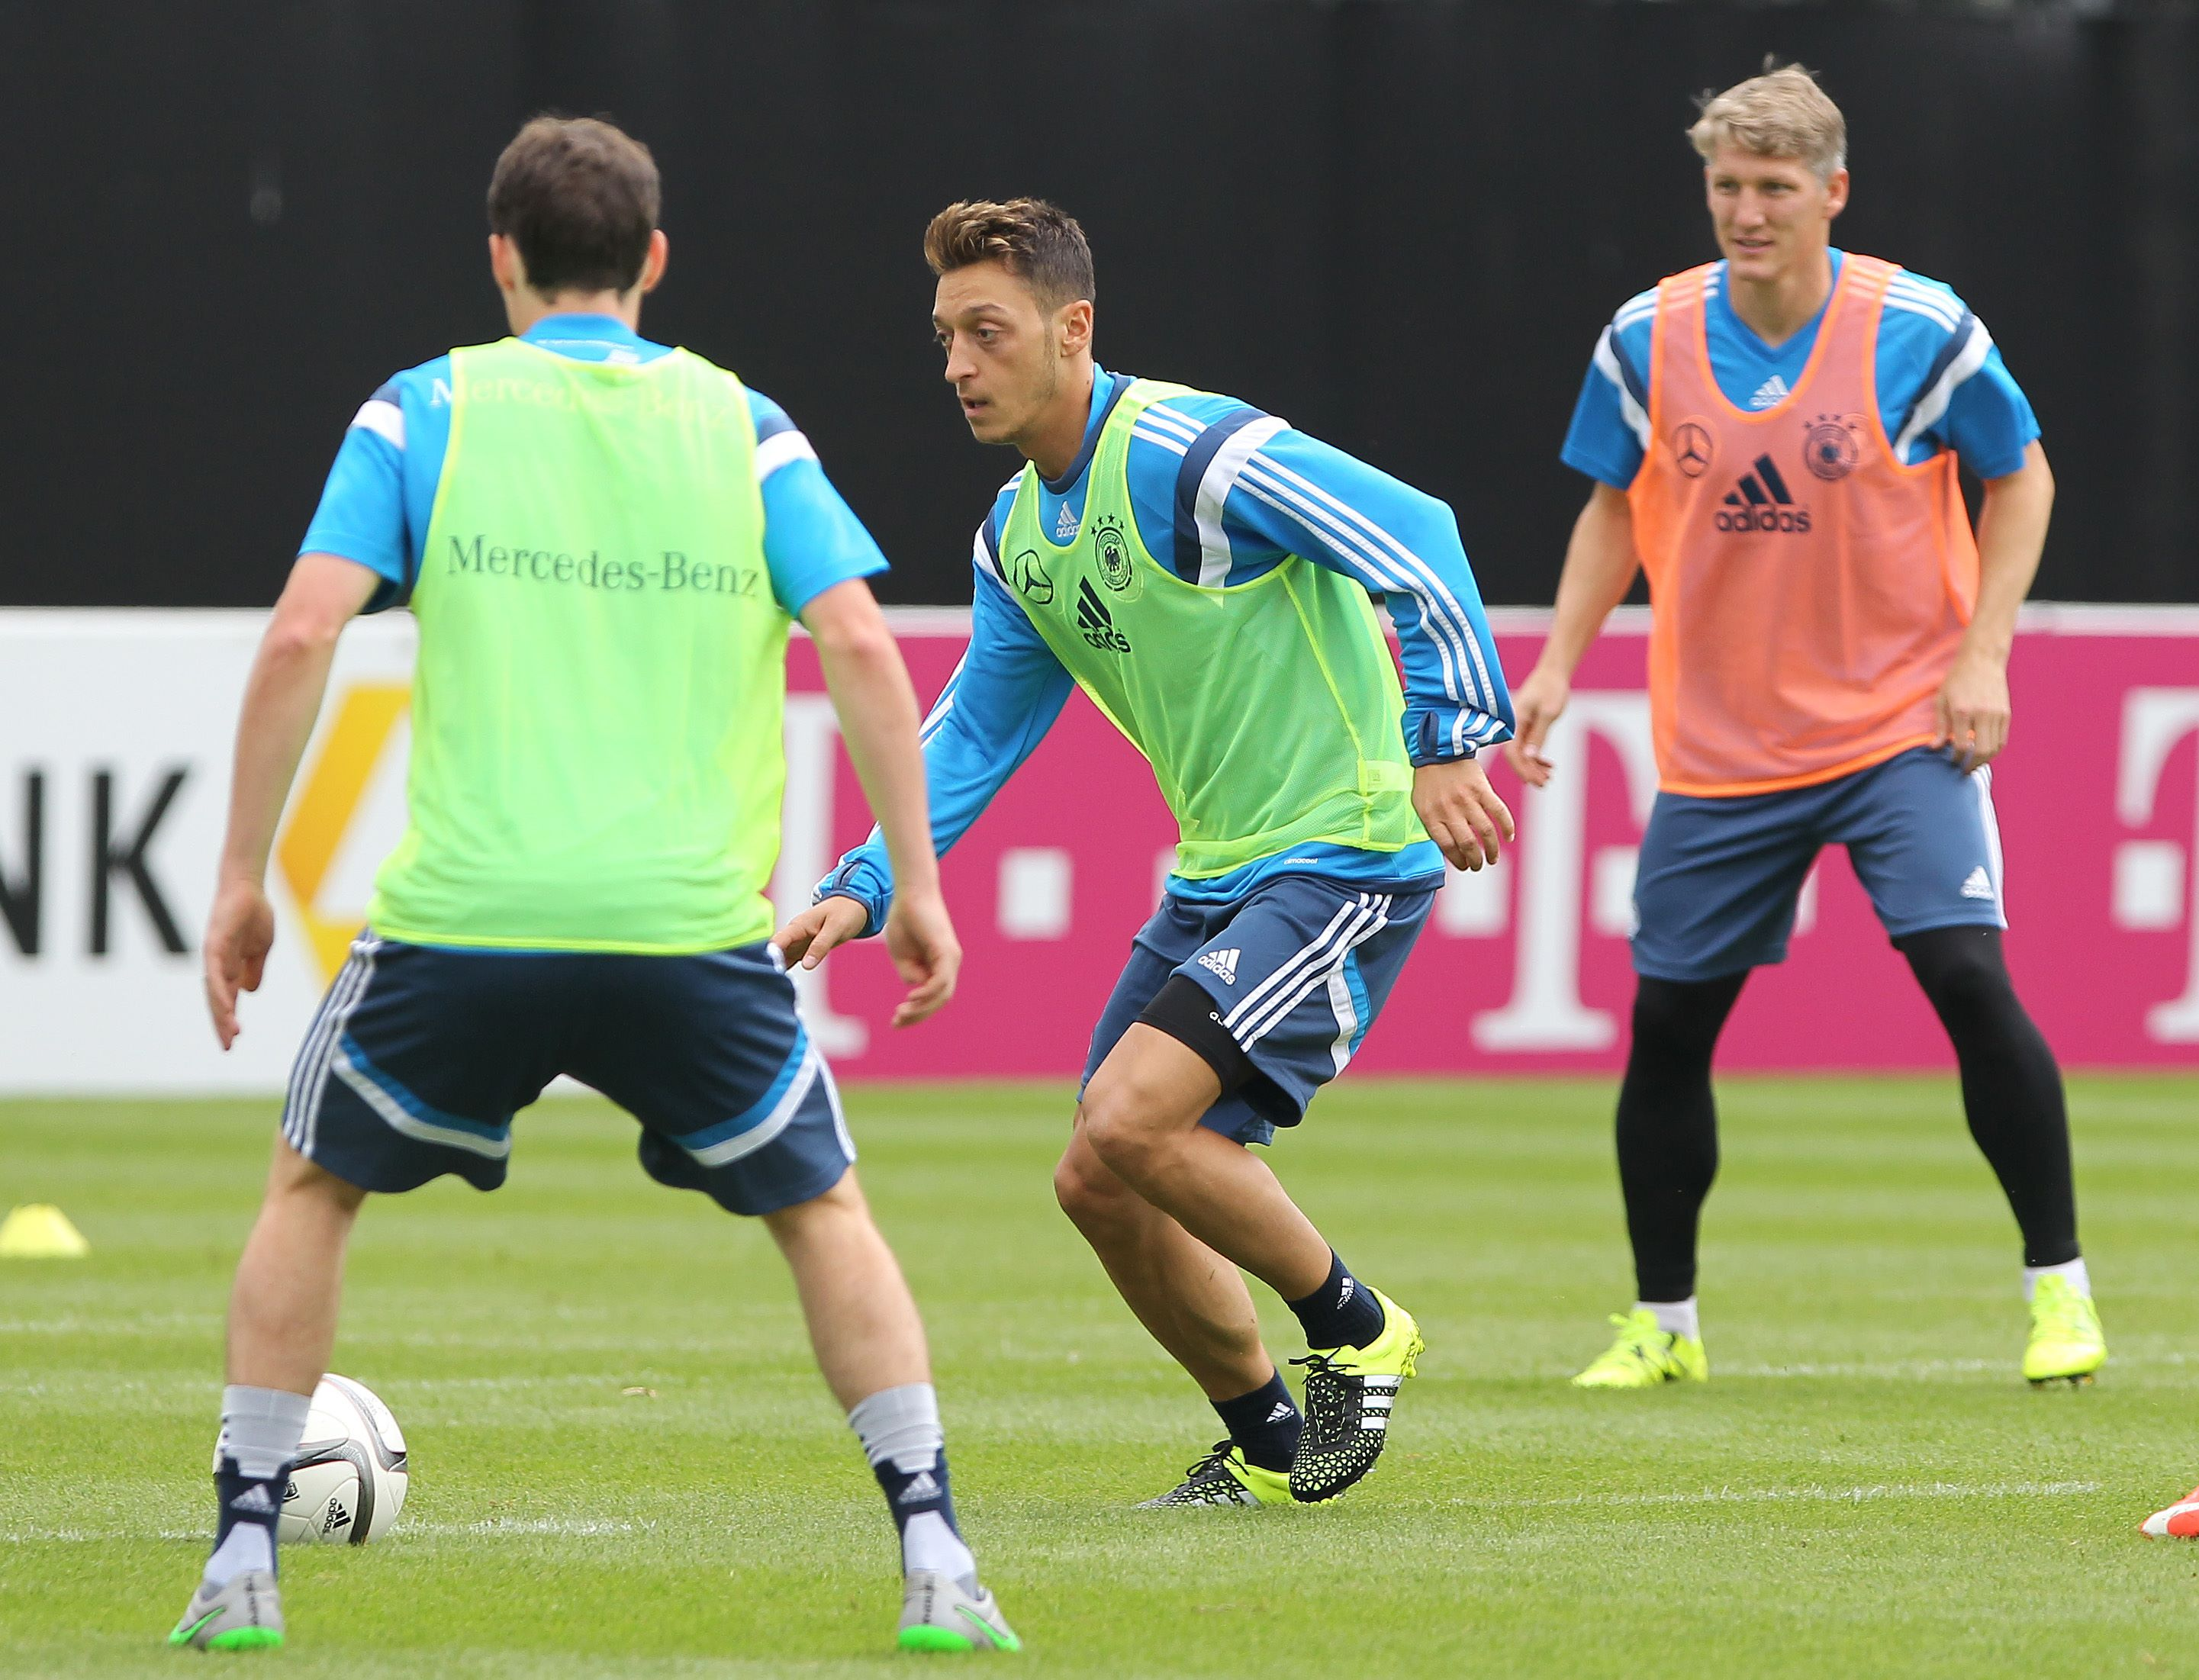 Germany's national football team's midfielder Mesut Oezil (Centre) plays the ball with teammates during a training session in Frankfurt, western Germany on September 2, 2015 prior to the Euro 2016 qualifier football game Germany vs Poland on September 4, 2015. nPHOTO:AFP